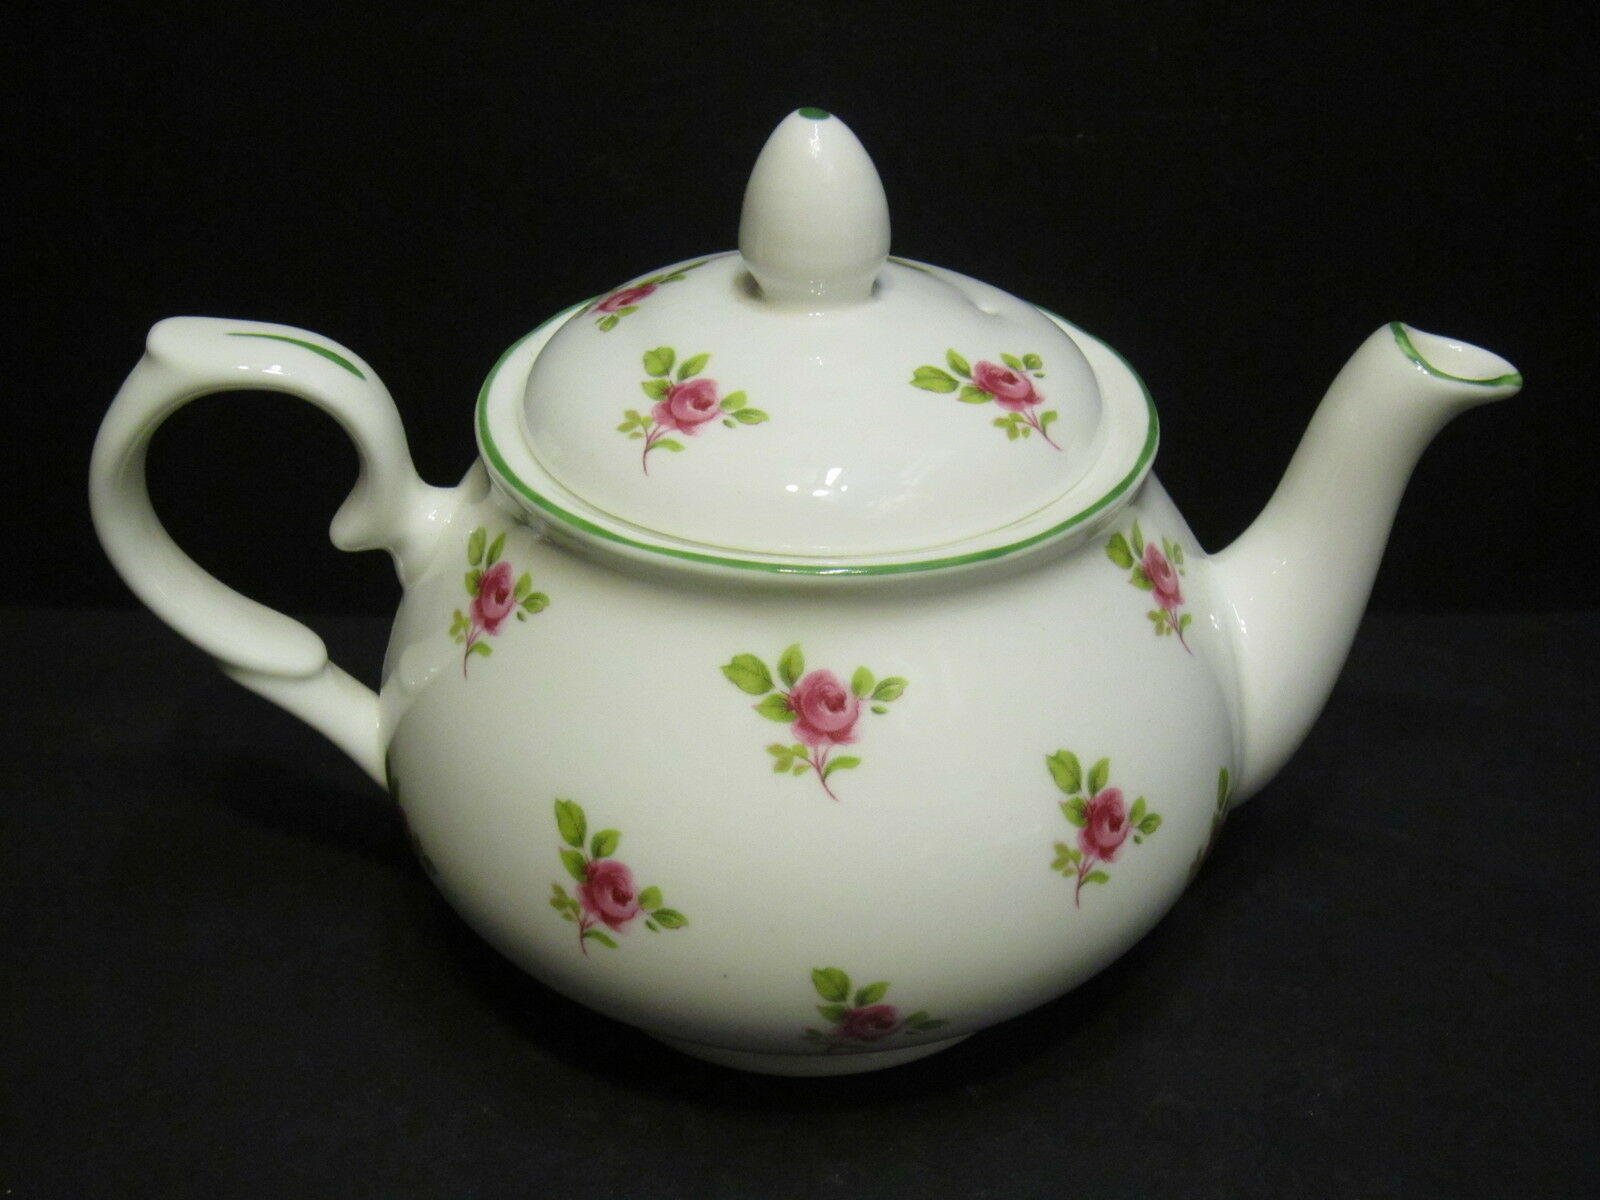 dot rose english fine bone china 2 cup tea pot by milton china green rim eur 16 37 picclick nl. Black Bedroom Furniture Sets. Home Design Ideas